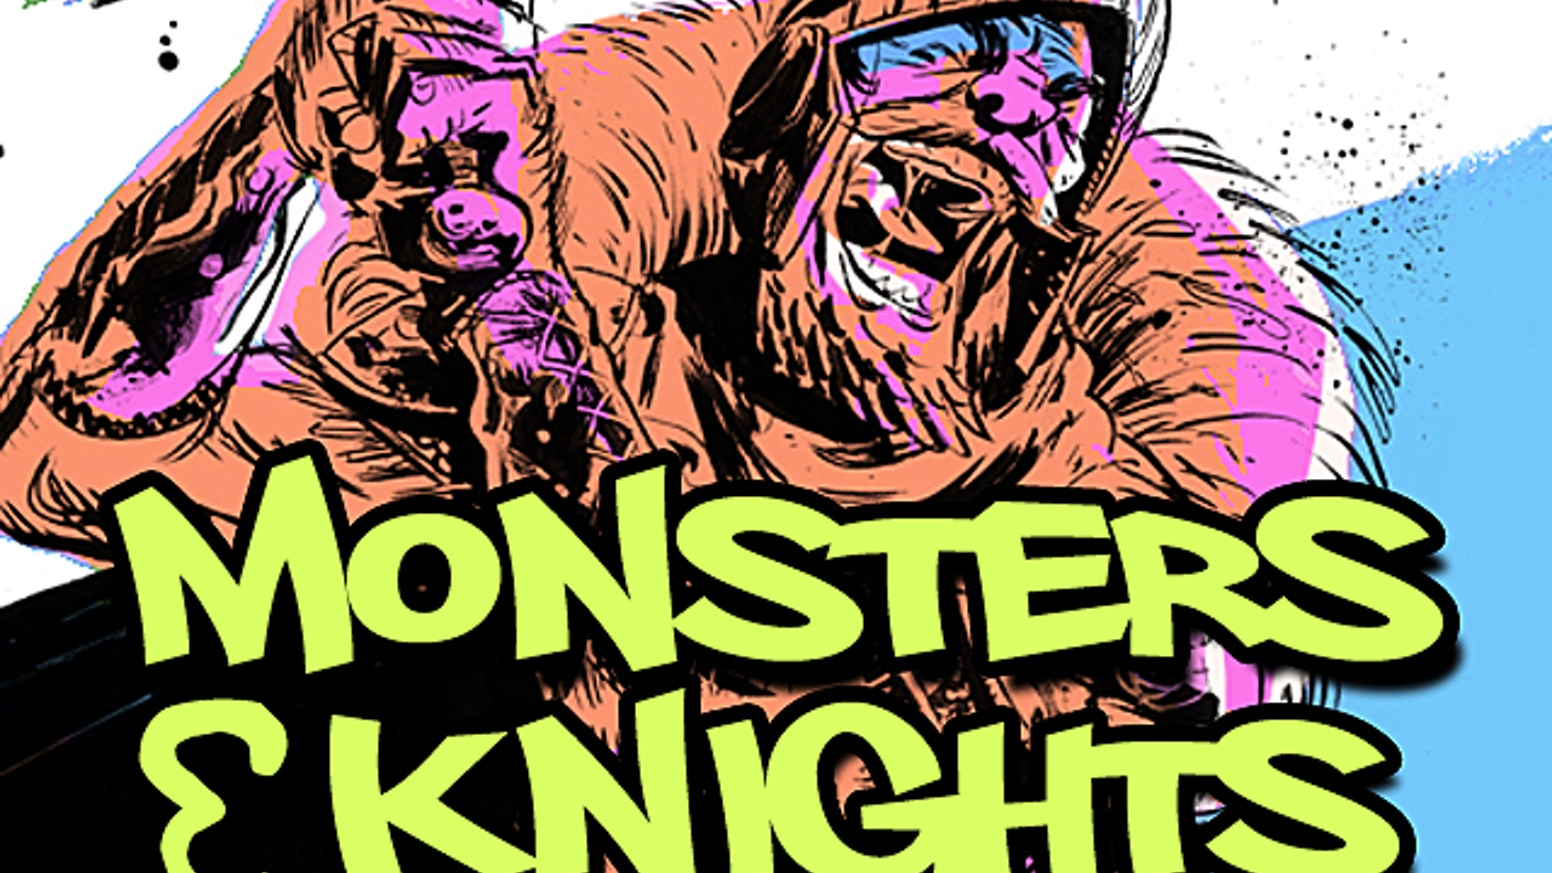 Monsters and Knights is a table top card game for 2-6 players. Compete to slay the most monsters or eat the most knights.